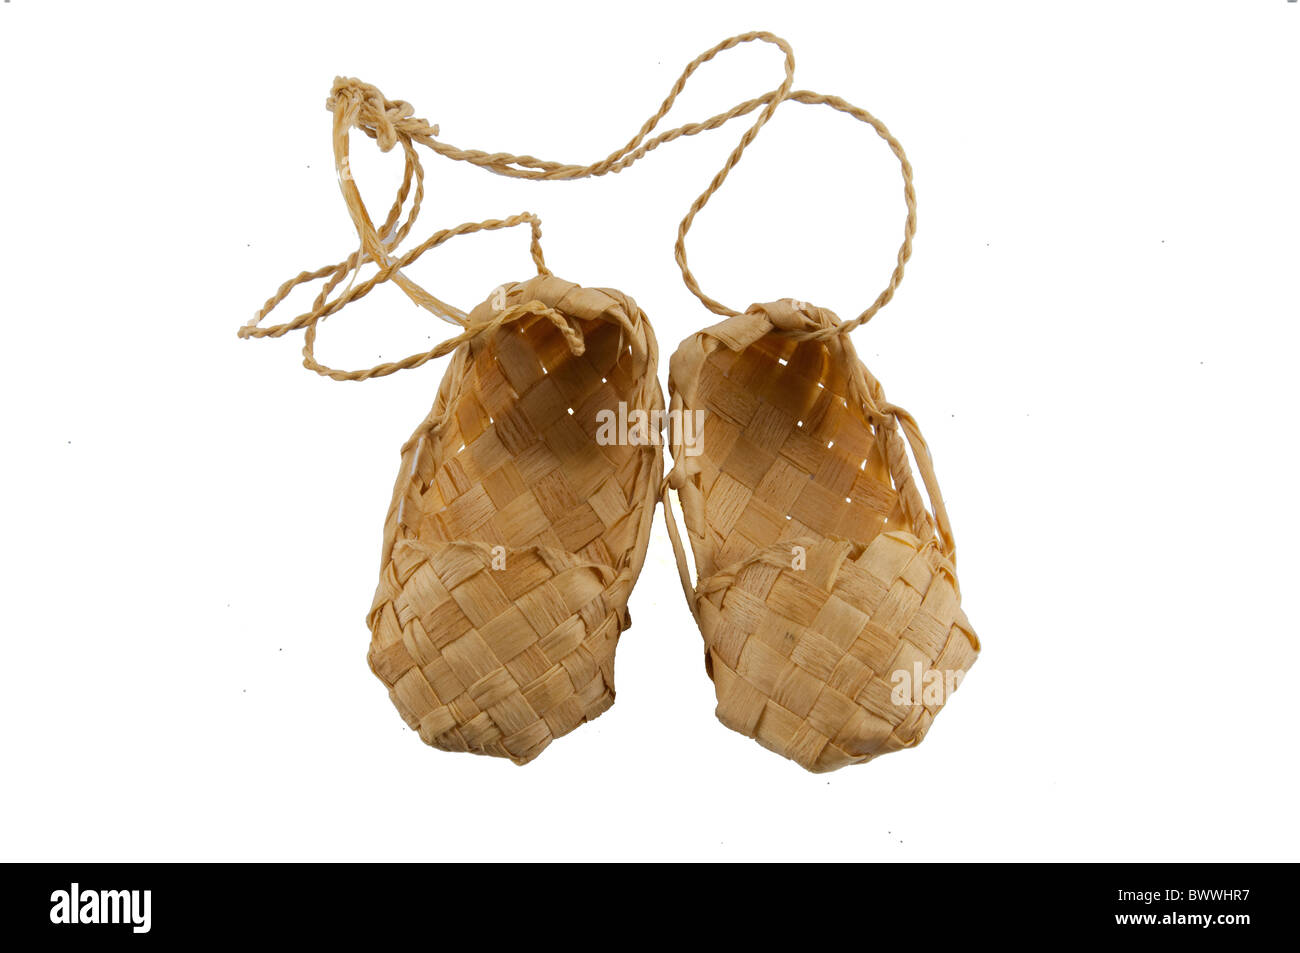 The picture of the cute bast shoe - Stock Image